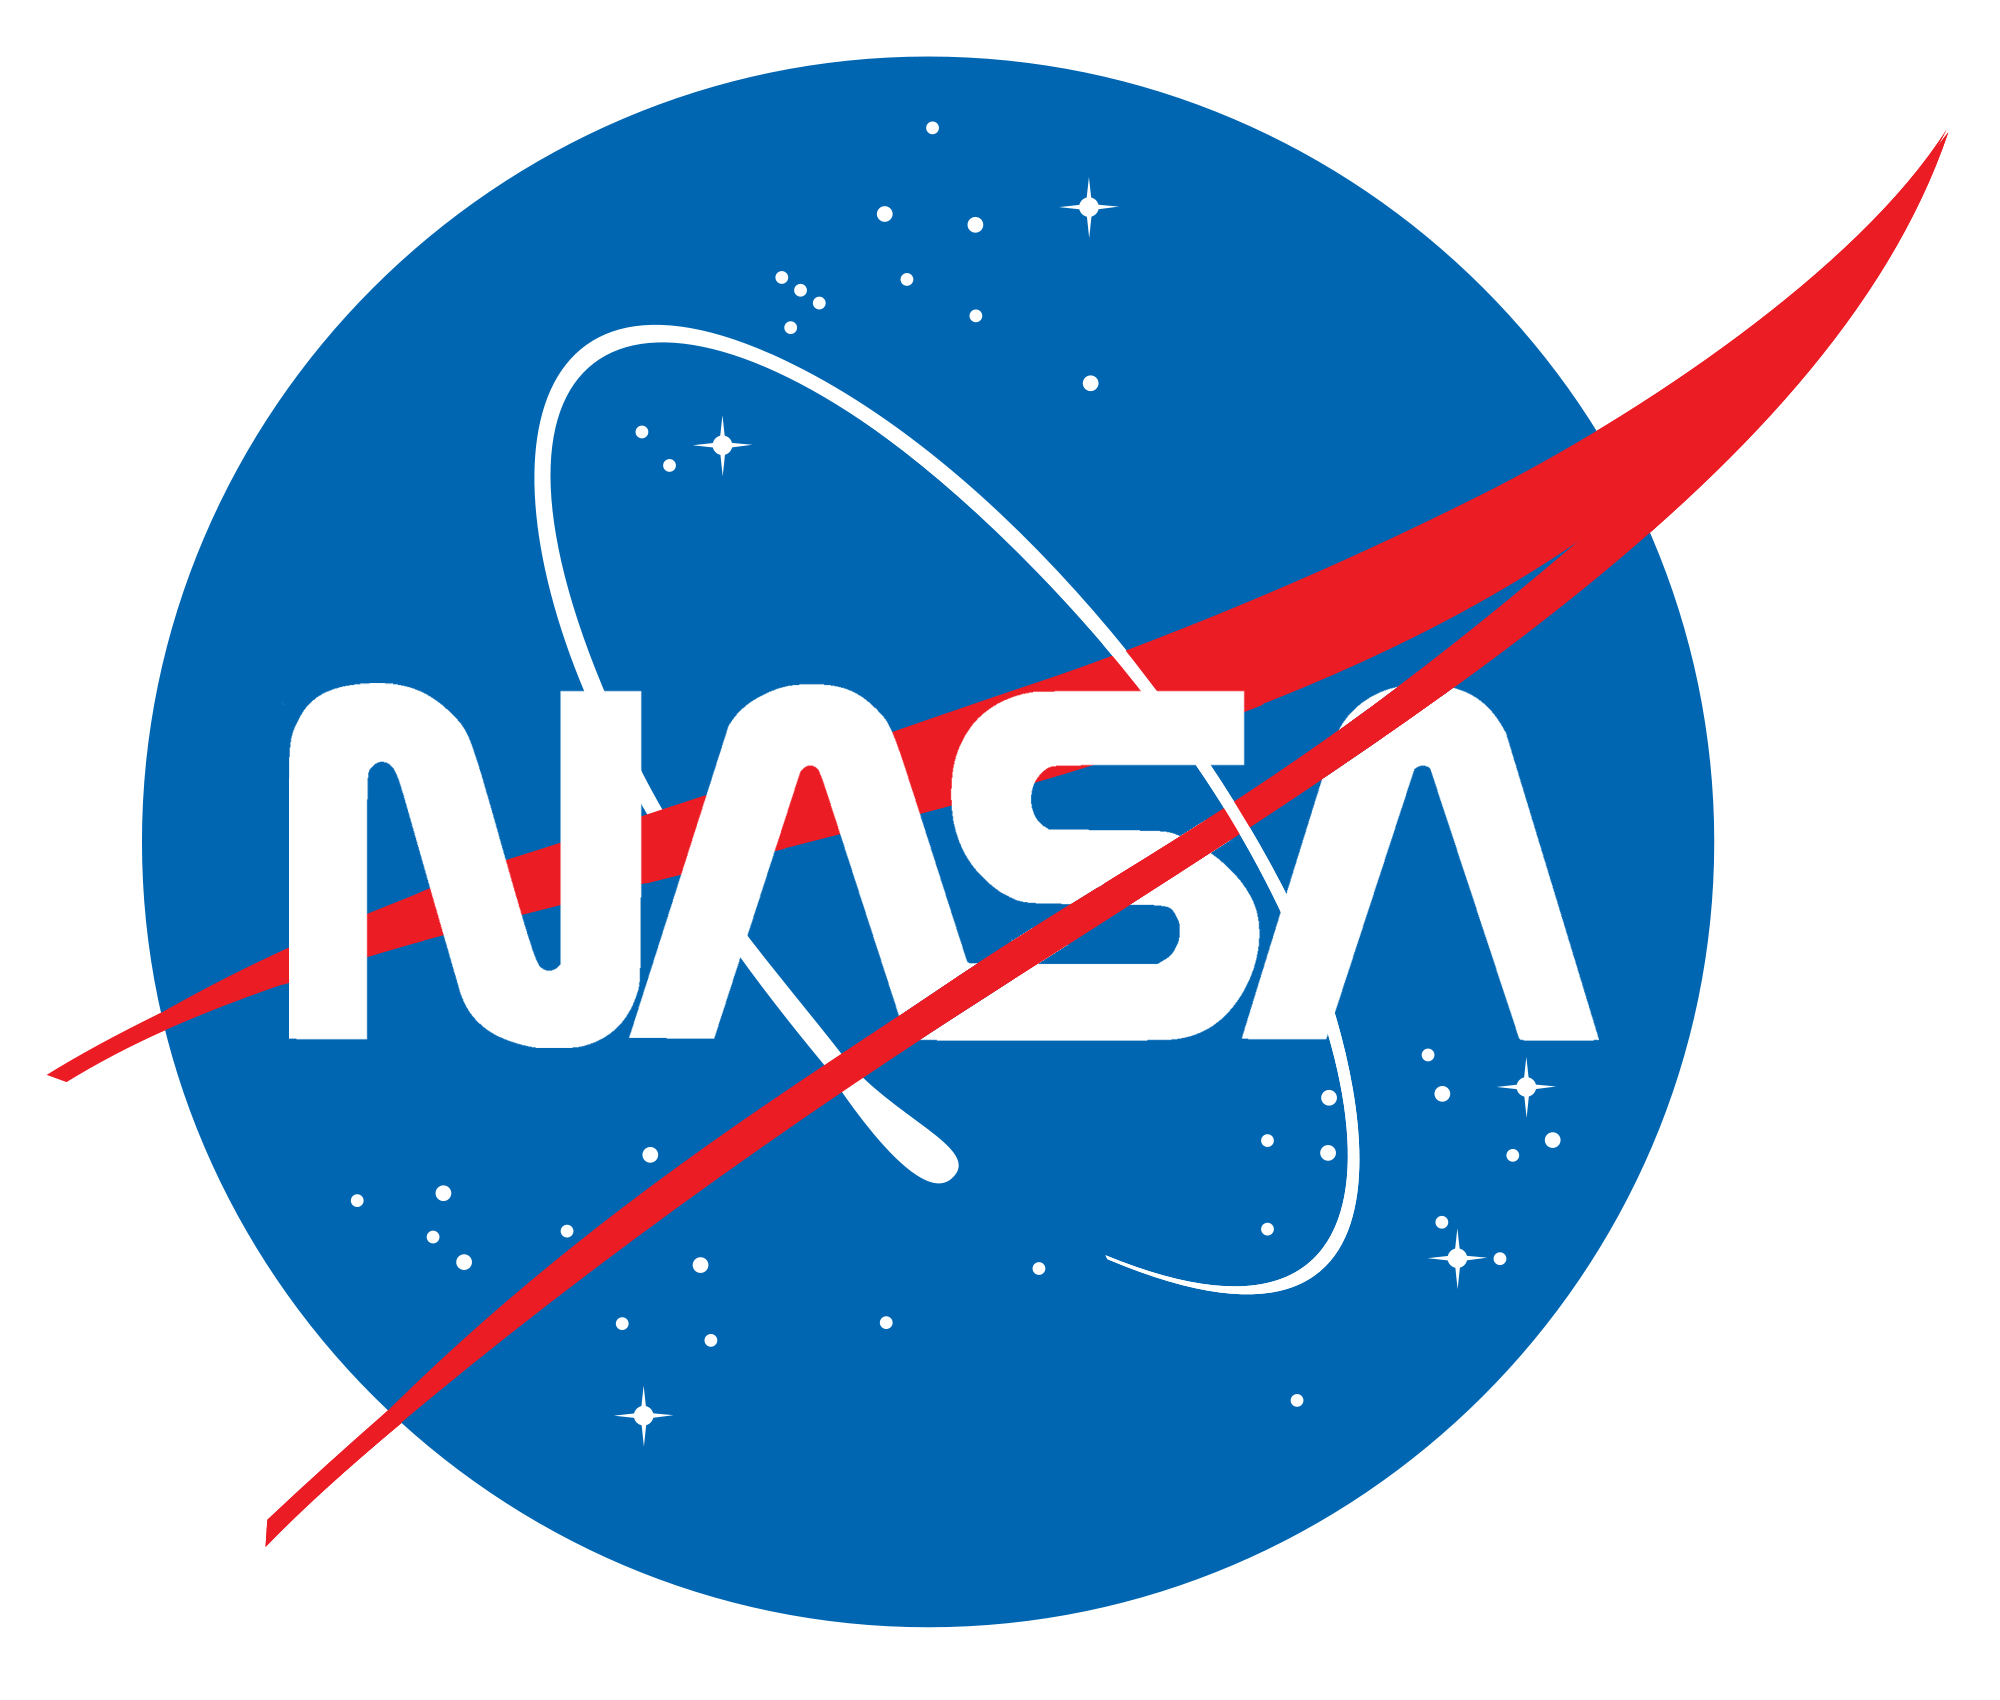 nasa clip art - photo #1